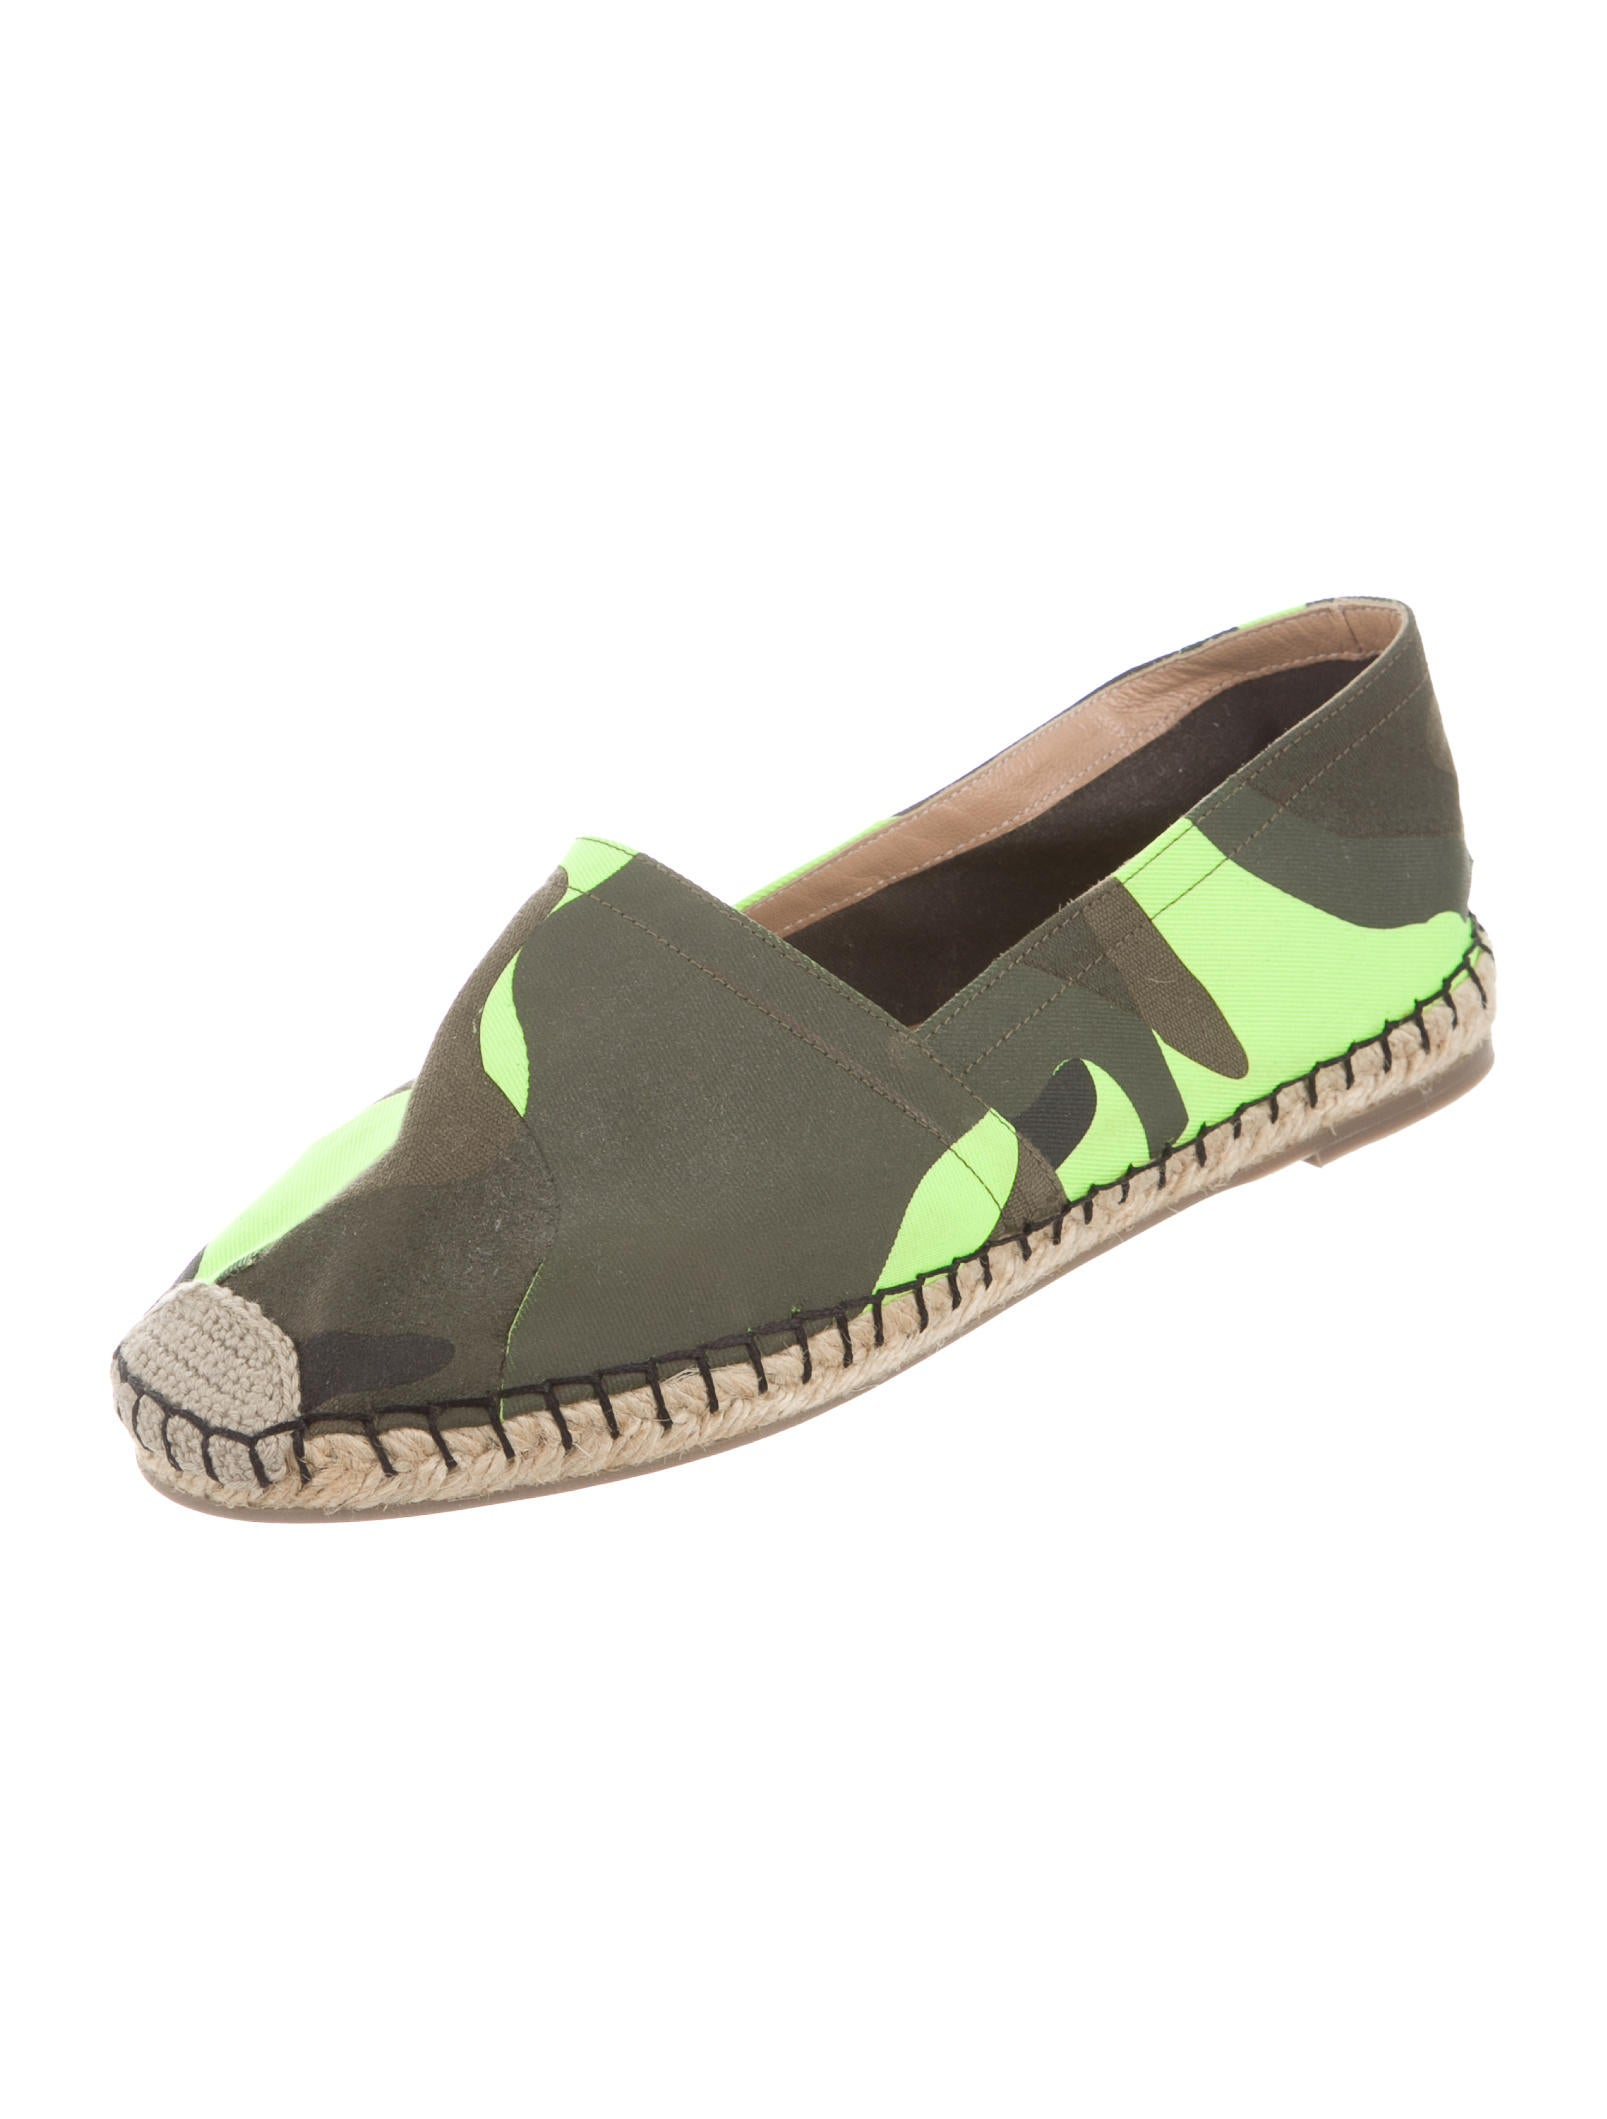 Valentino psychedelic camouflage espadrilles shoes for Cama quinsay